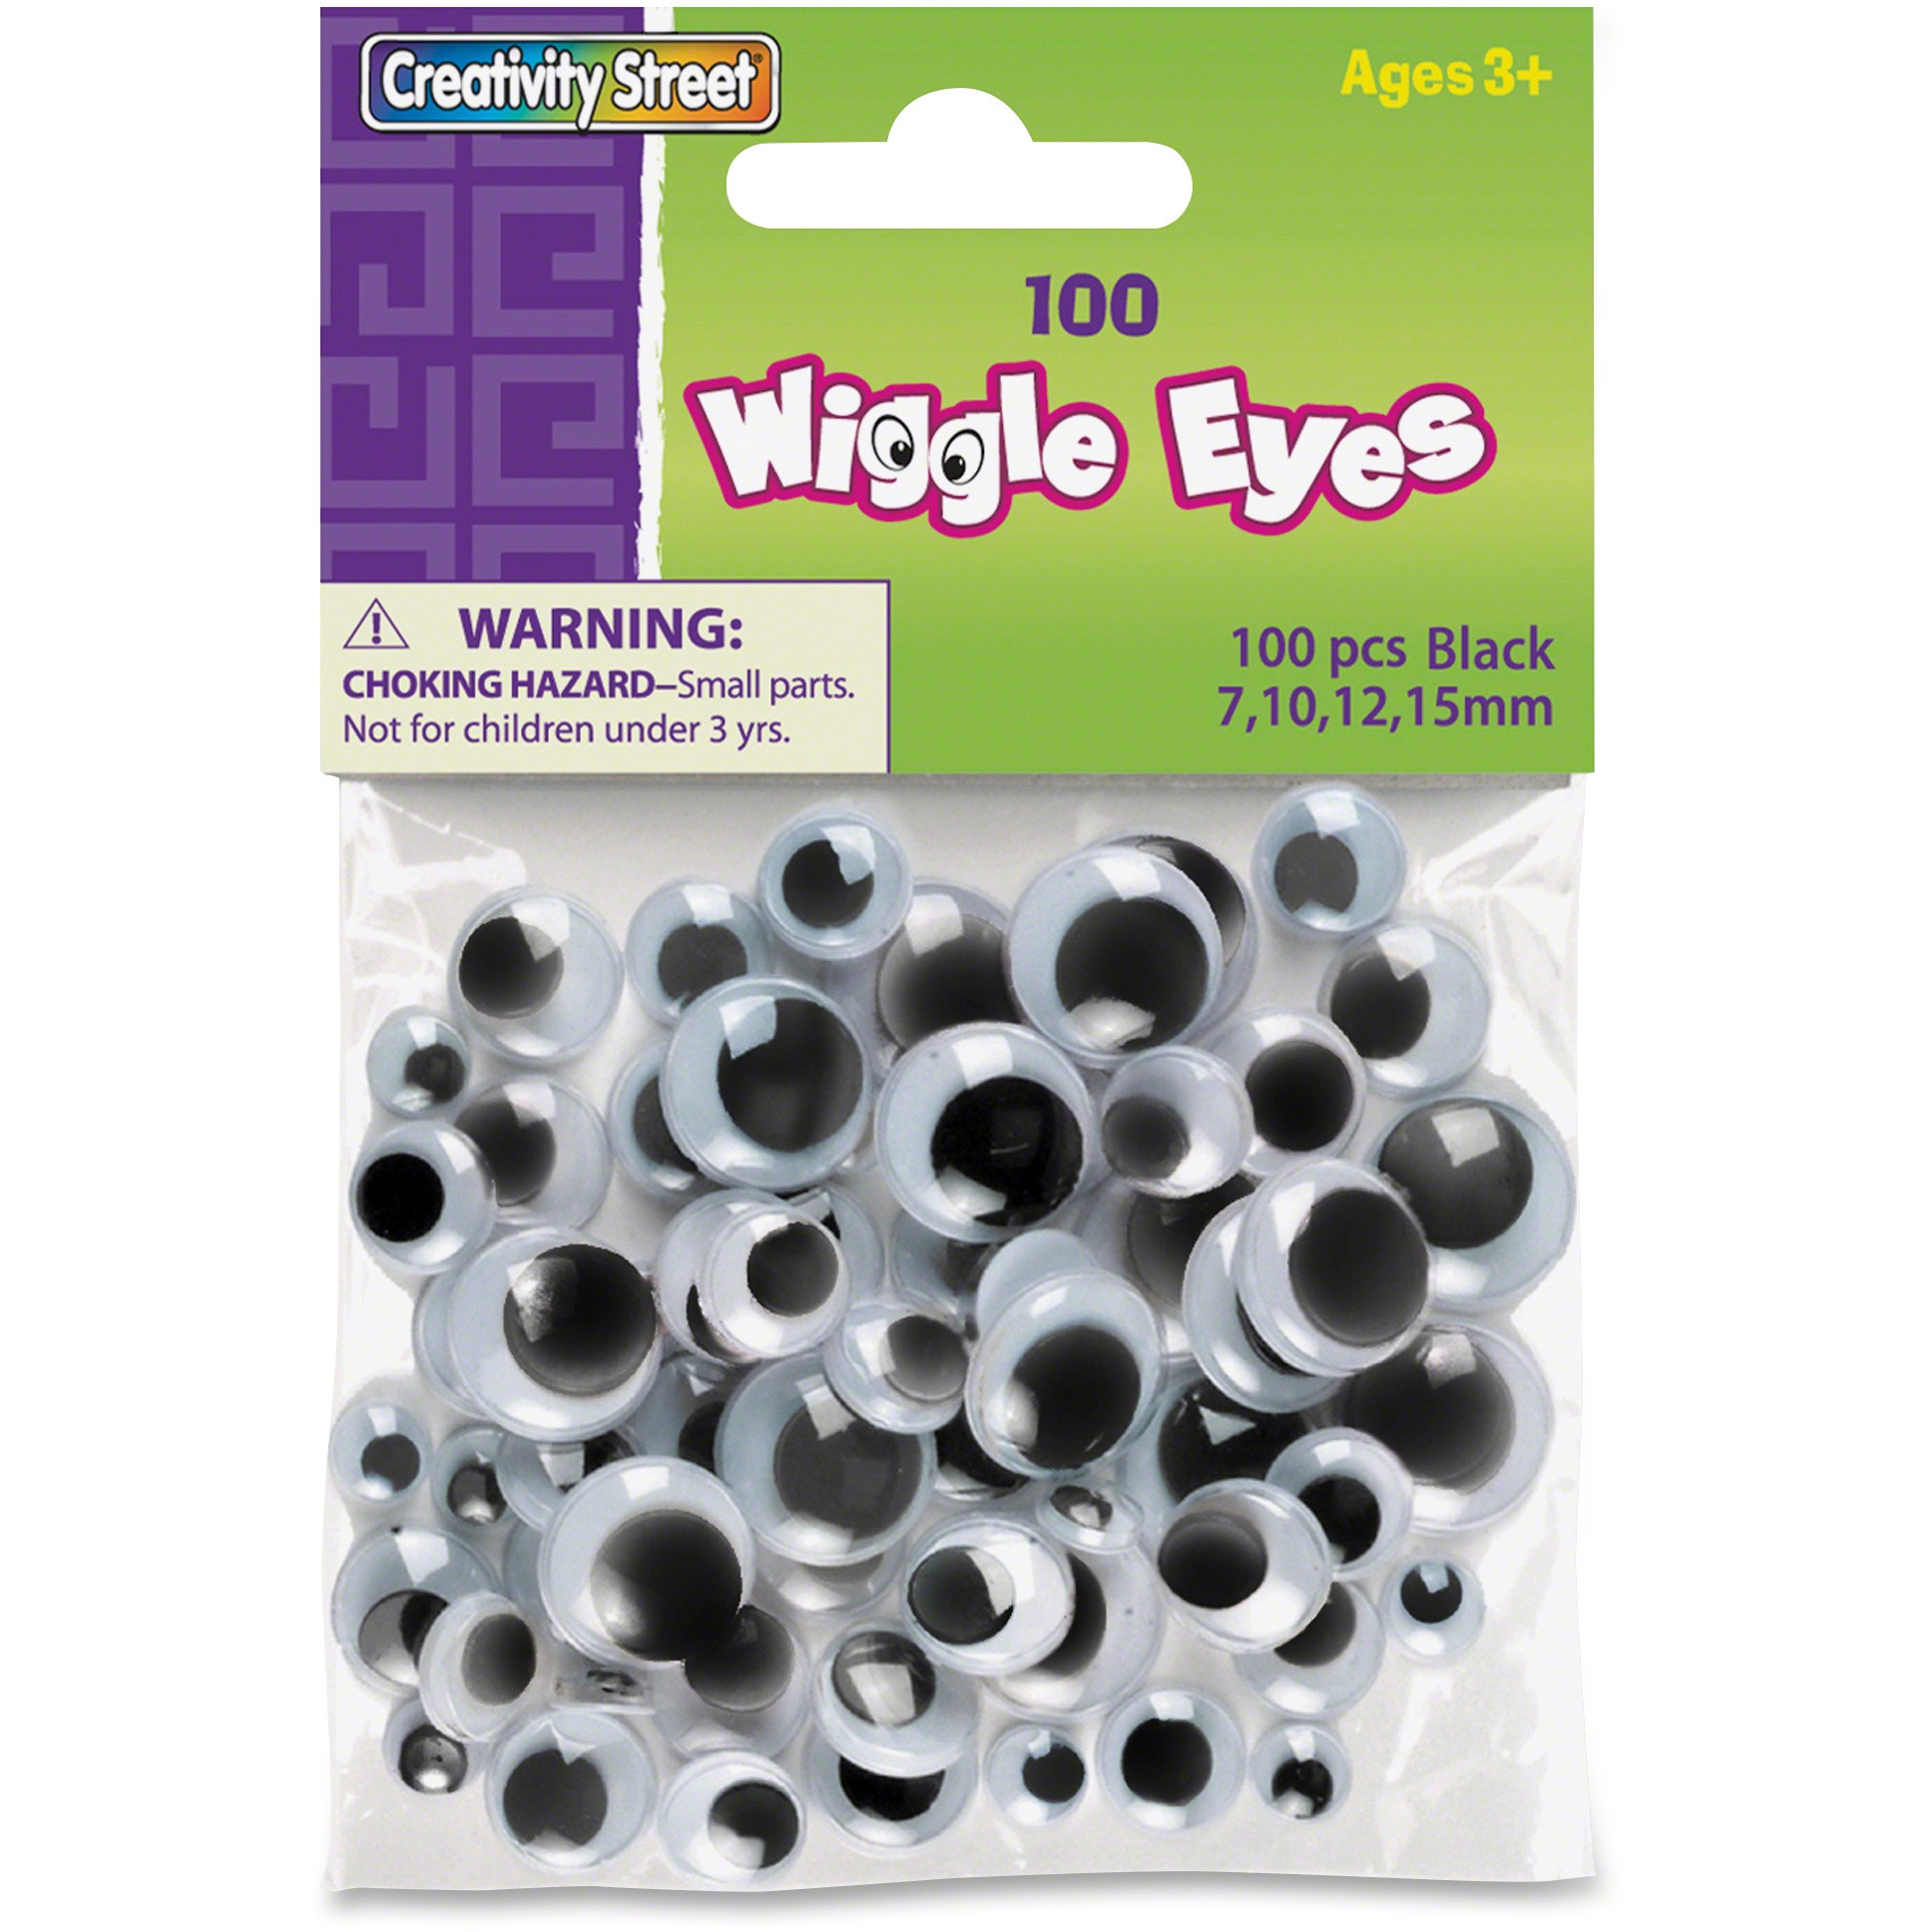 Creativity Street 100-pc Assorted Size Wiggle Eyes, Black, 100 / Pack (Quantity)